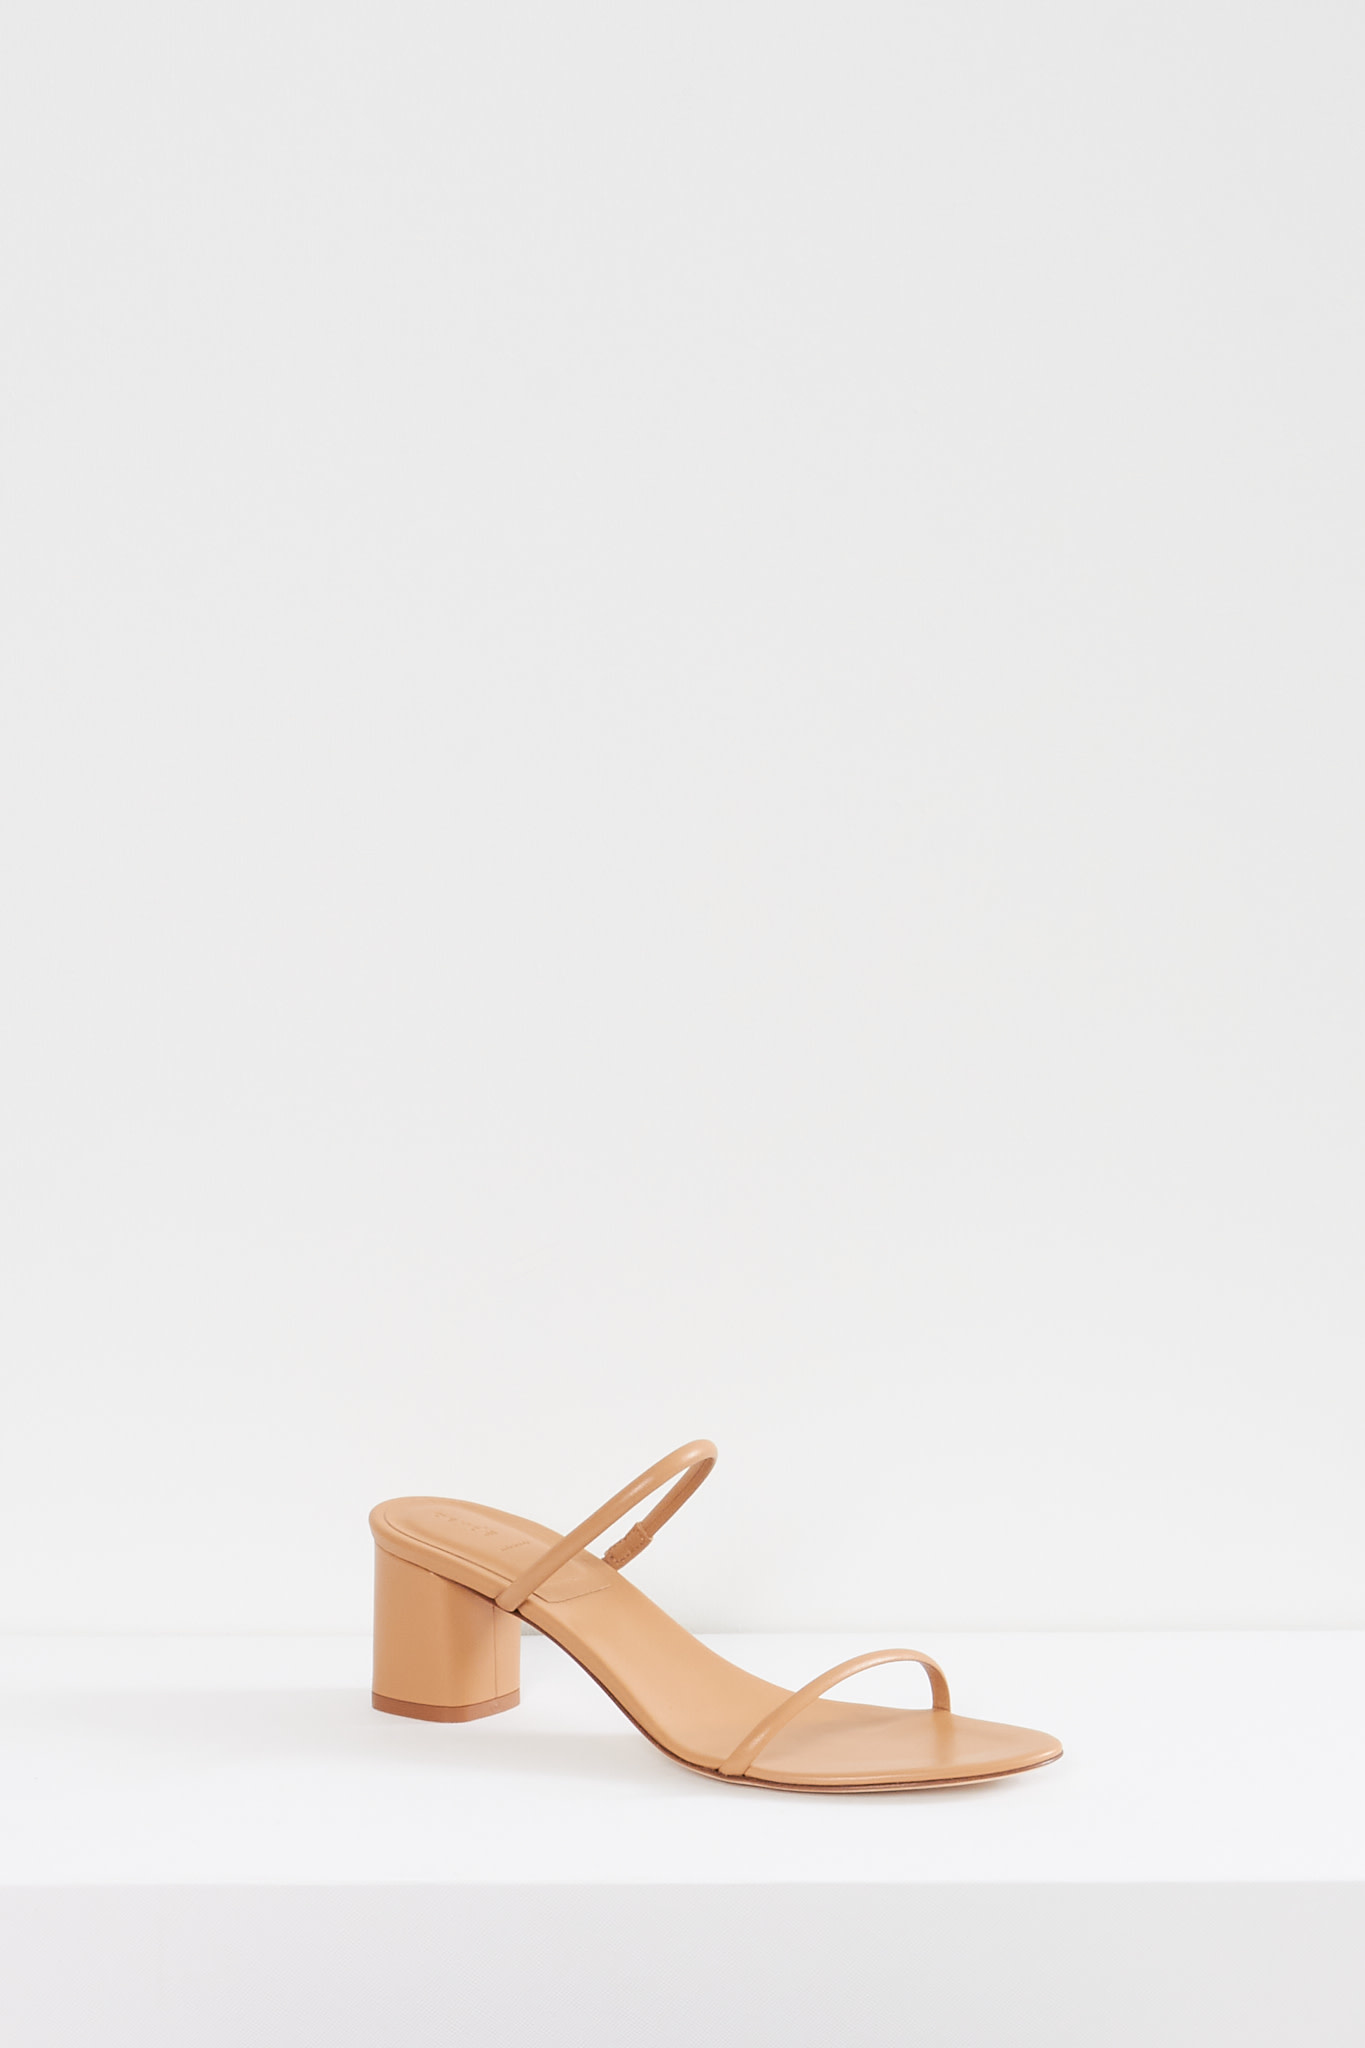 Aeyde - Anni nappa leather sandals